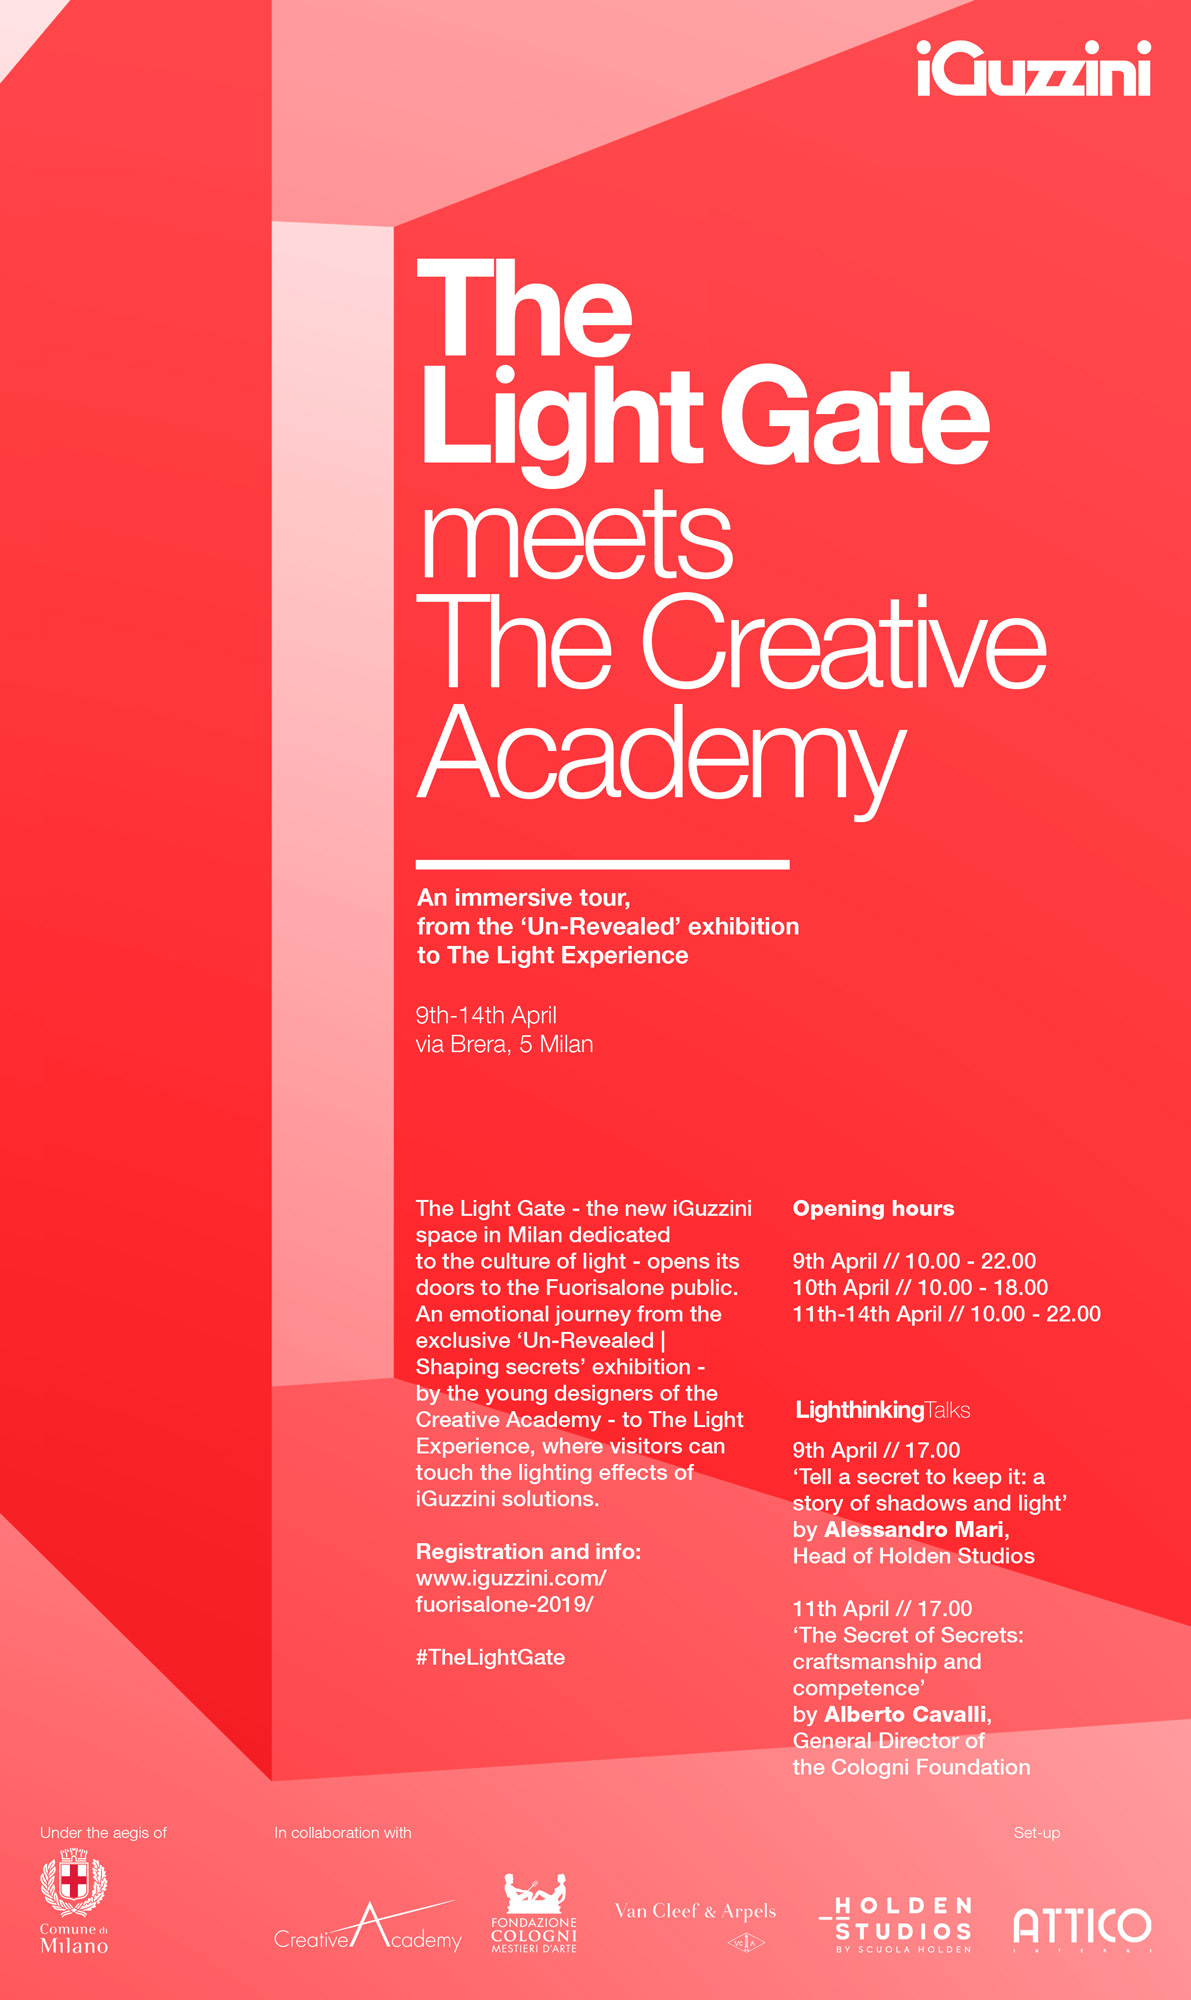 The Light Gate meets the Creative Academy